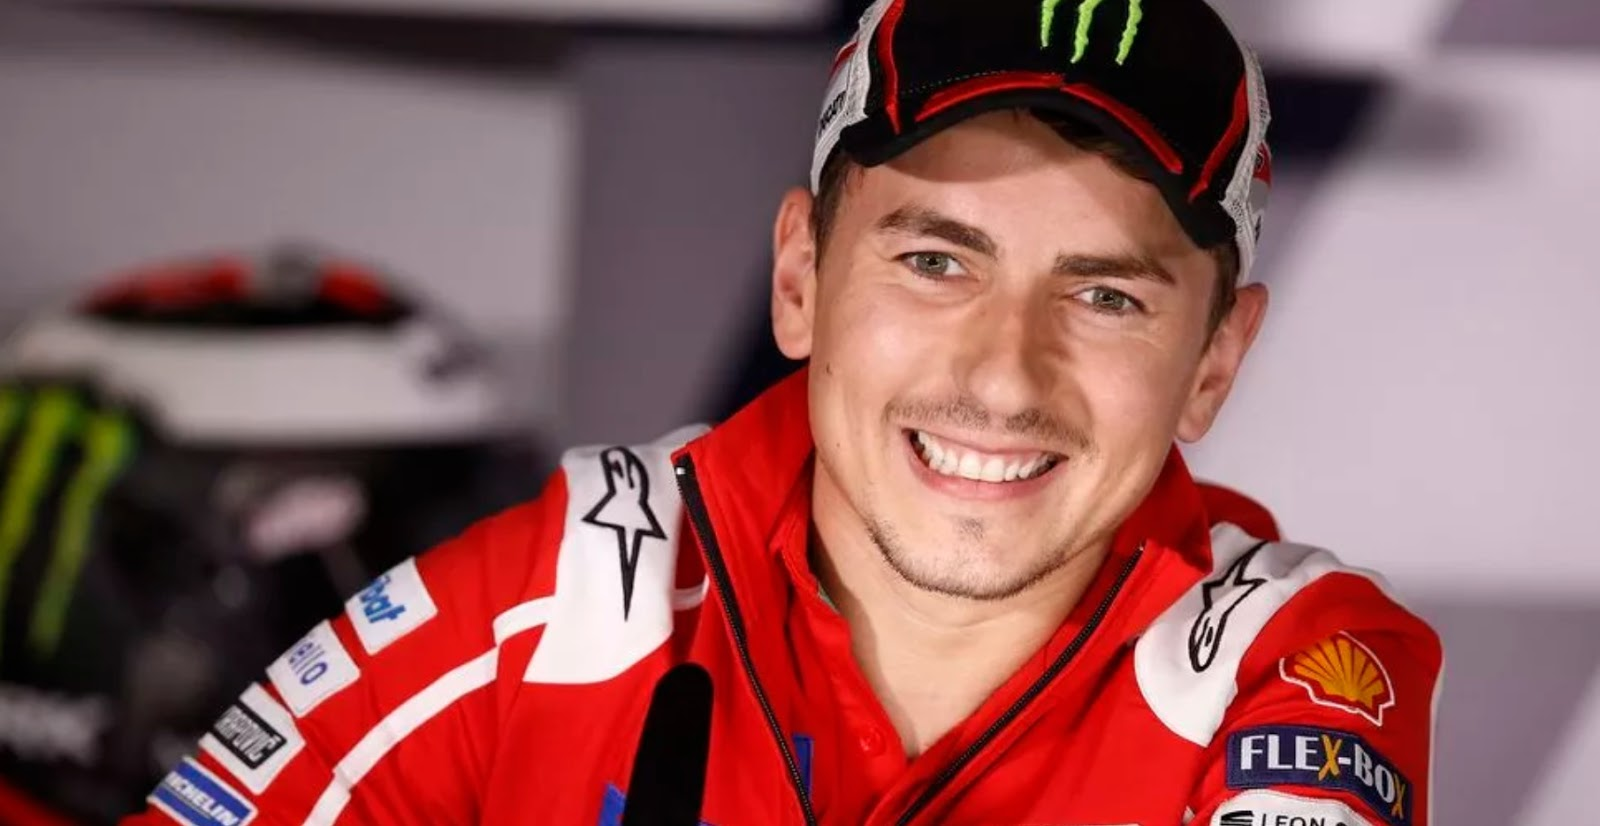 Increase in salary of Jorge Lorenzo